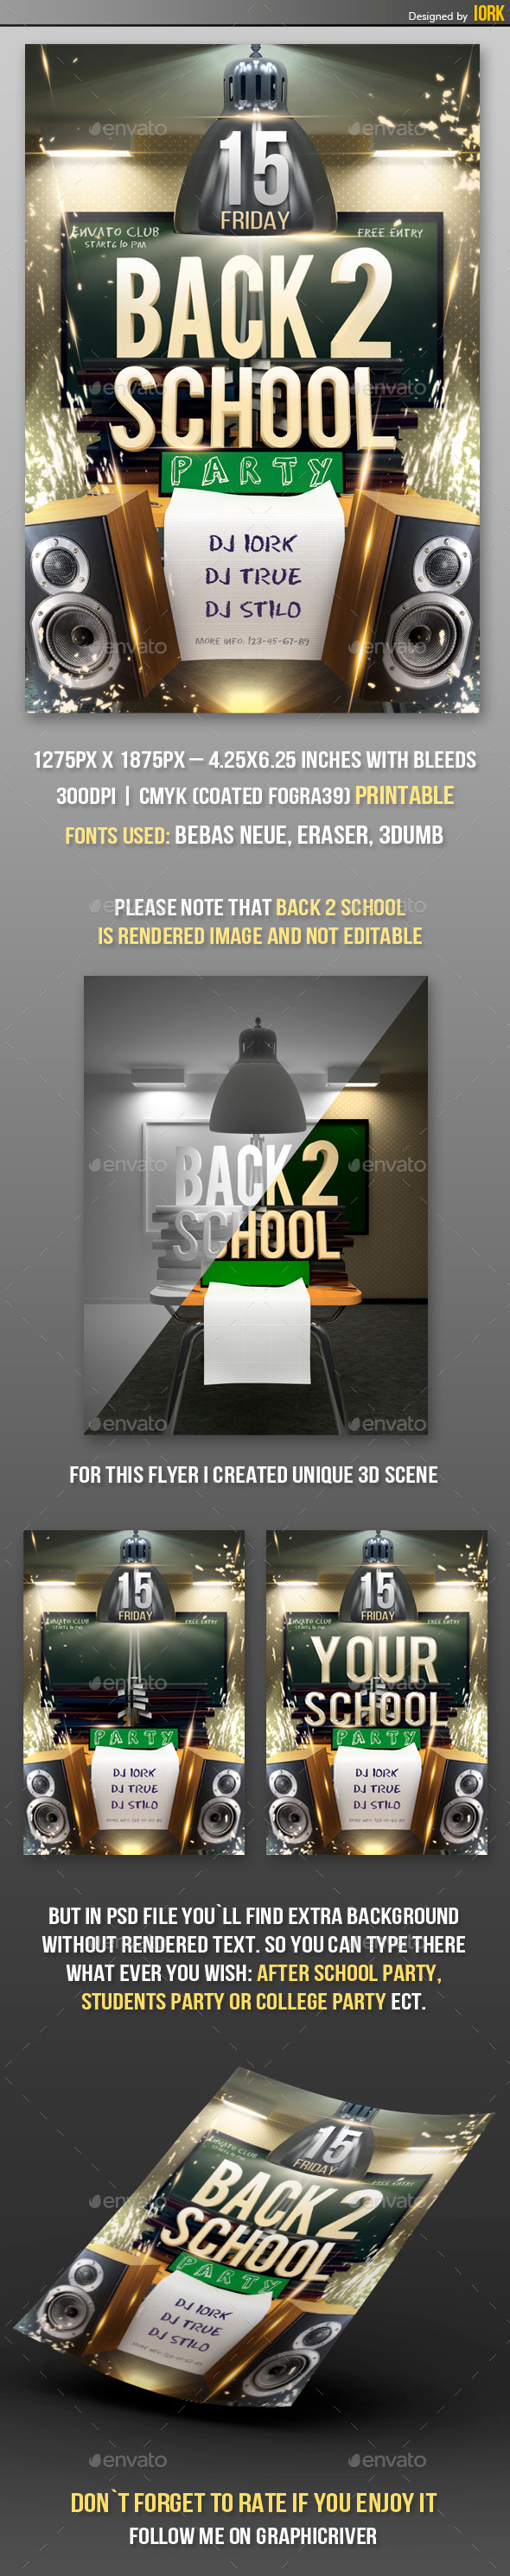 Back To School Party Flyer - Flyers Print Templates